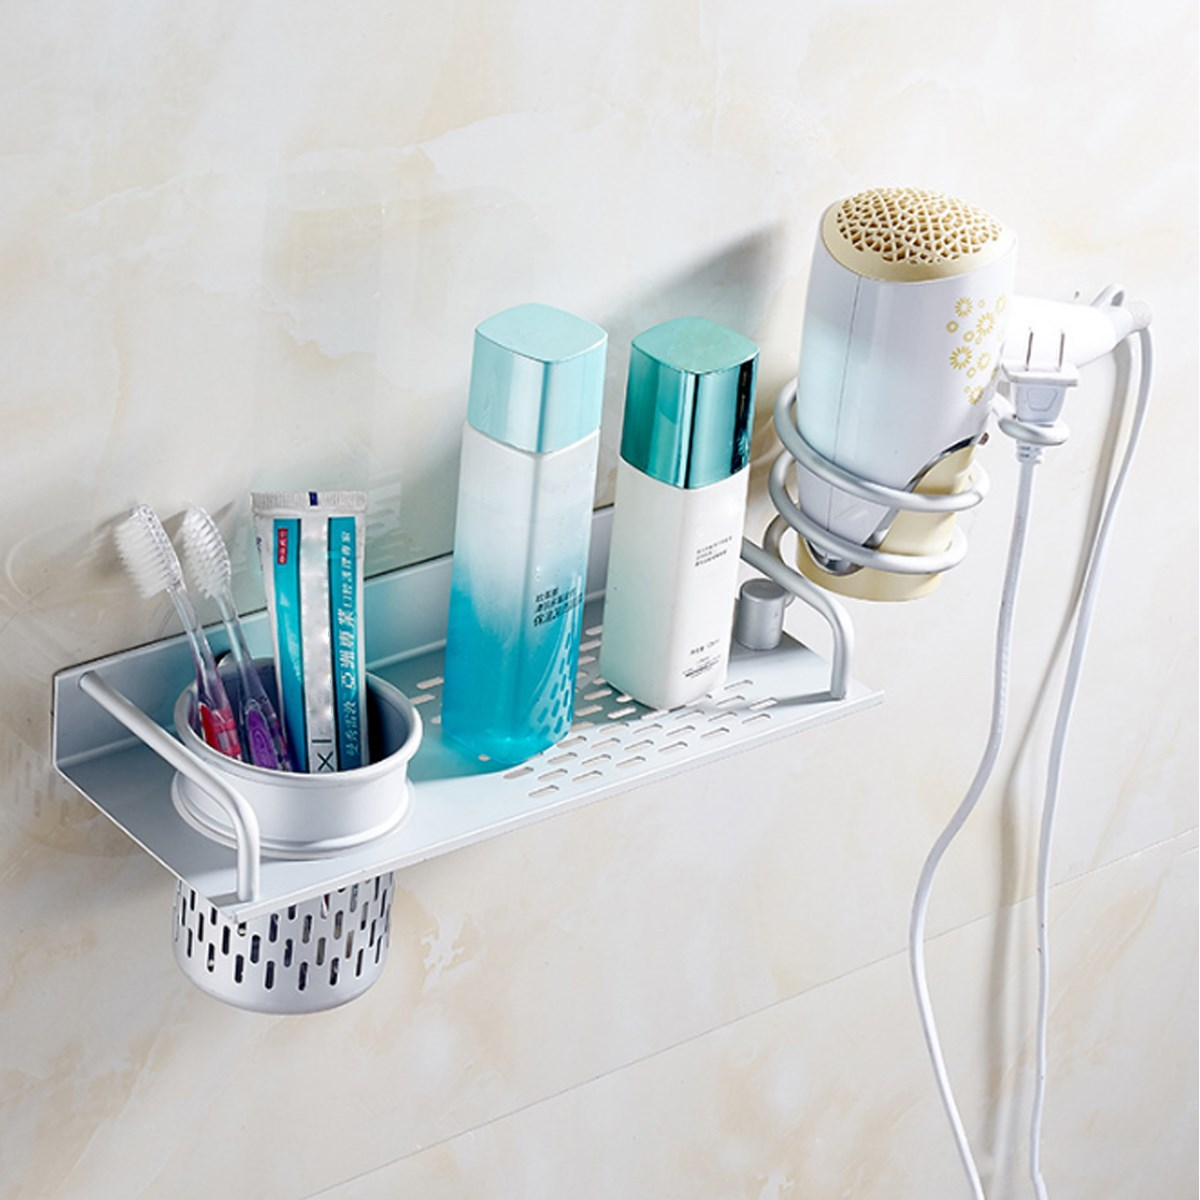 Plastic removable bath shelf wall mounted cosmetic holder storage - Aluminum Alloy Portable Spiral Blow Hair Dryer Stand With Cup Cosmetics Holder Wall Mounted Holder Bathroom